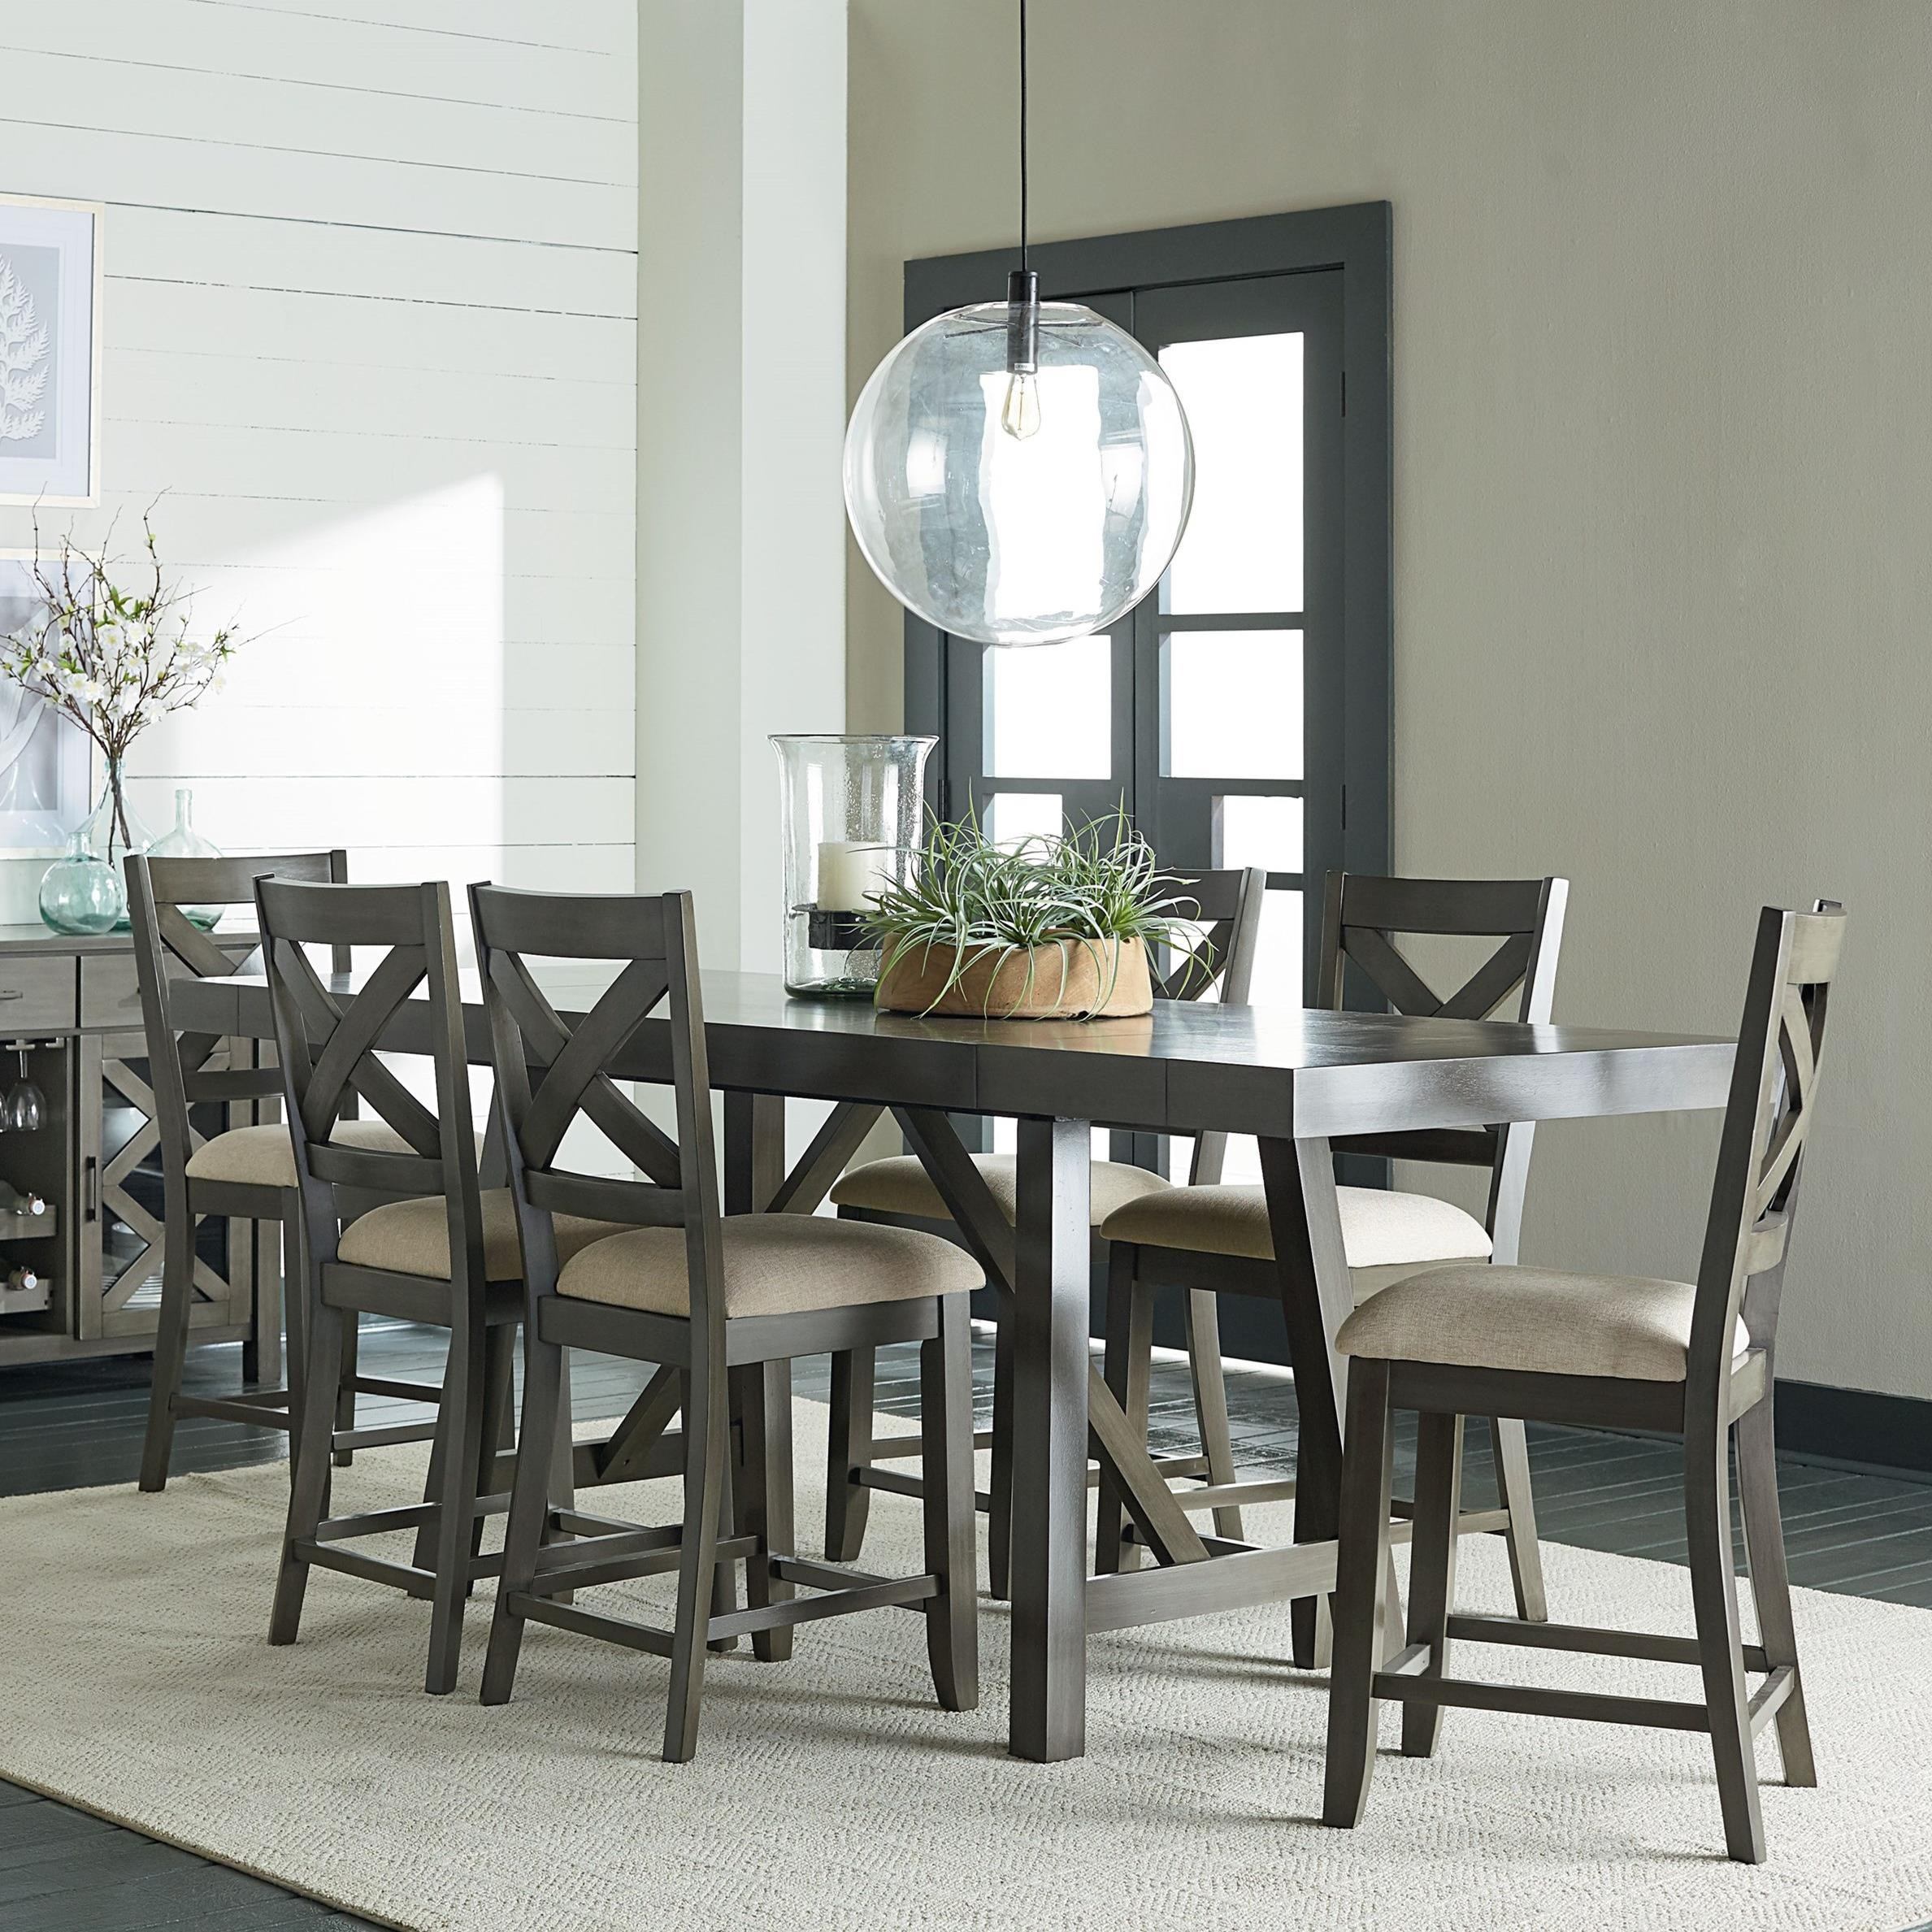 Dining Room Table Sets: Counter Height 7-Piece Dining Room Table Set By Standard